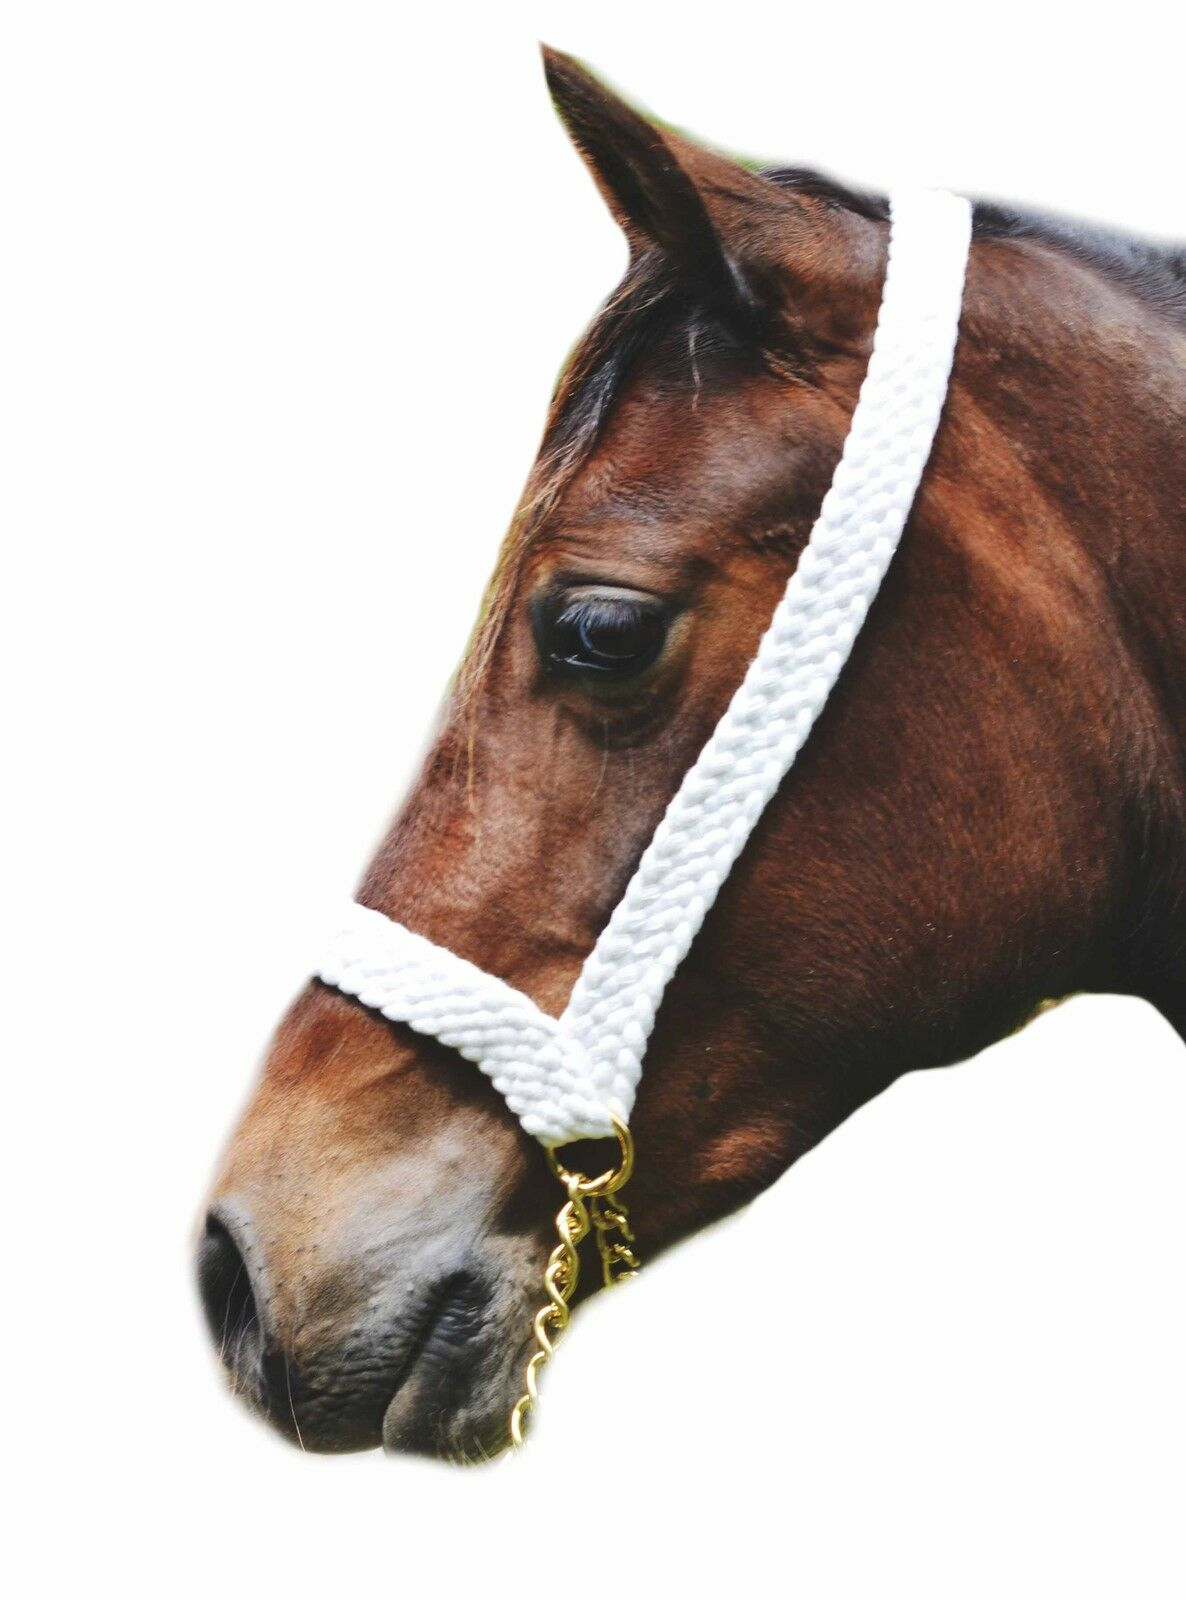 Plaited Show White Halter  8 Strand (1  wide) chain lead Welsh Cob C D Large M&M  up to 60% off